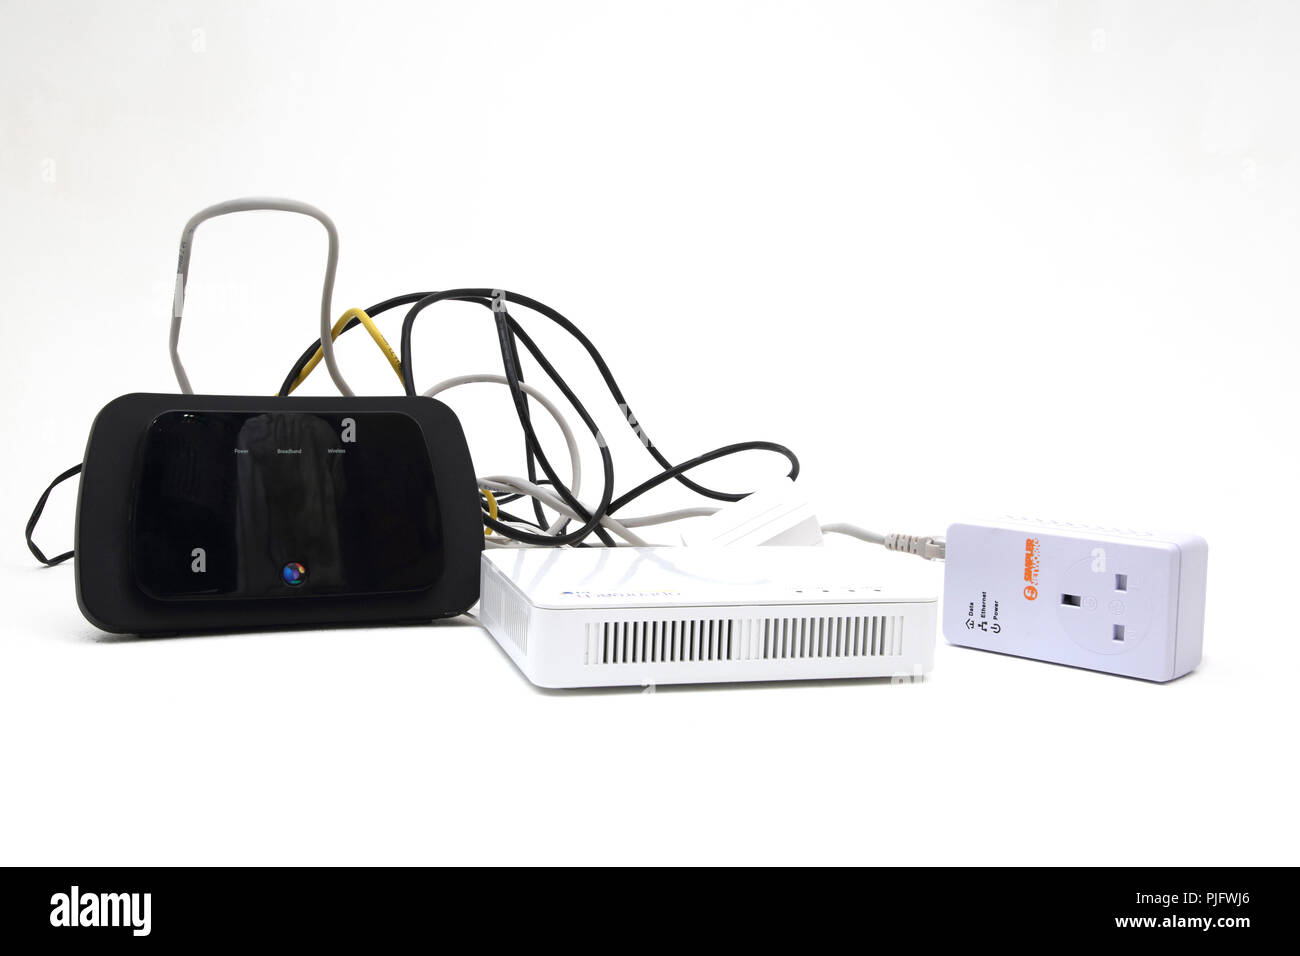 Cable Modem Stock Photos Images Alamy Wiring Ethernet Through House Bt Home Hub And Openreach With Image